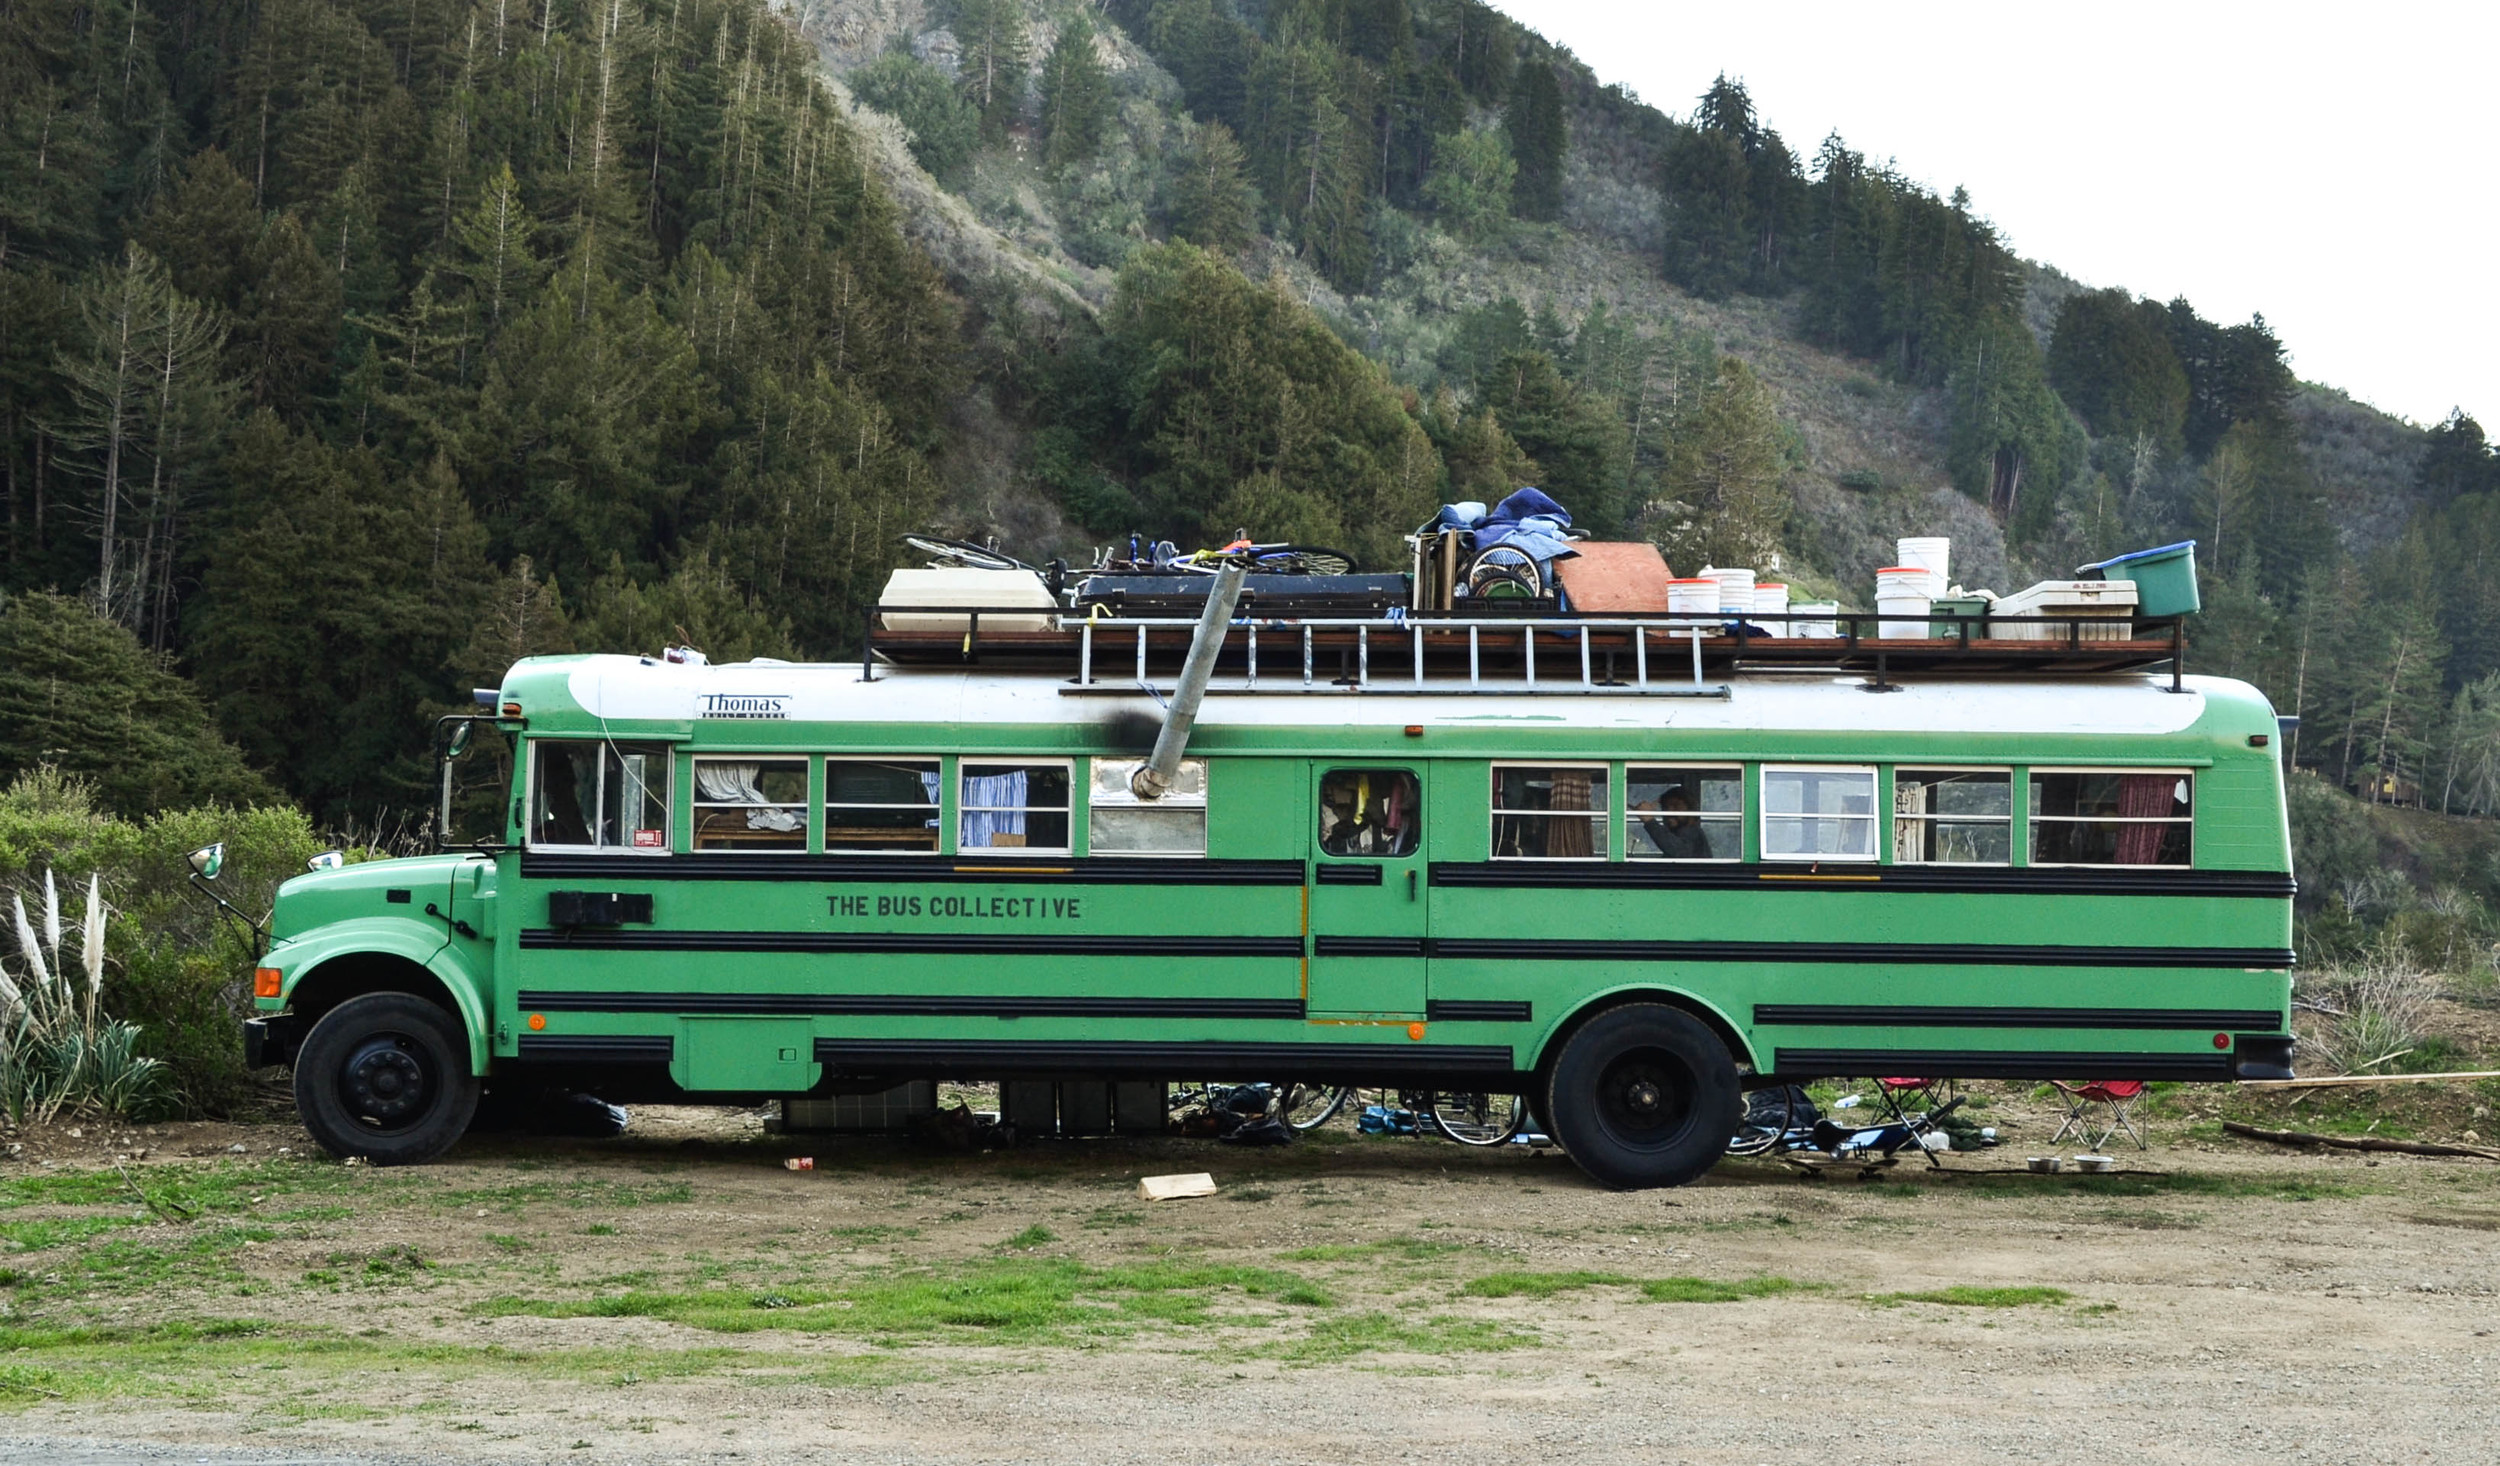 I'm a huge fan of sweet adventure mobiles, particularly vans. My favorite part about them besides photographing and traveling in them is the rad people you meet on the road. A group of college students were living in this modified bus traveling the country.